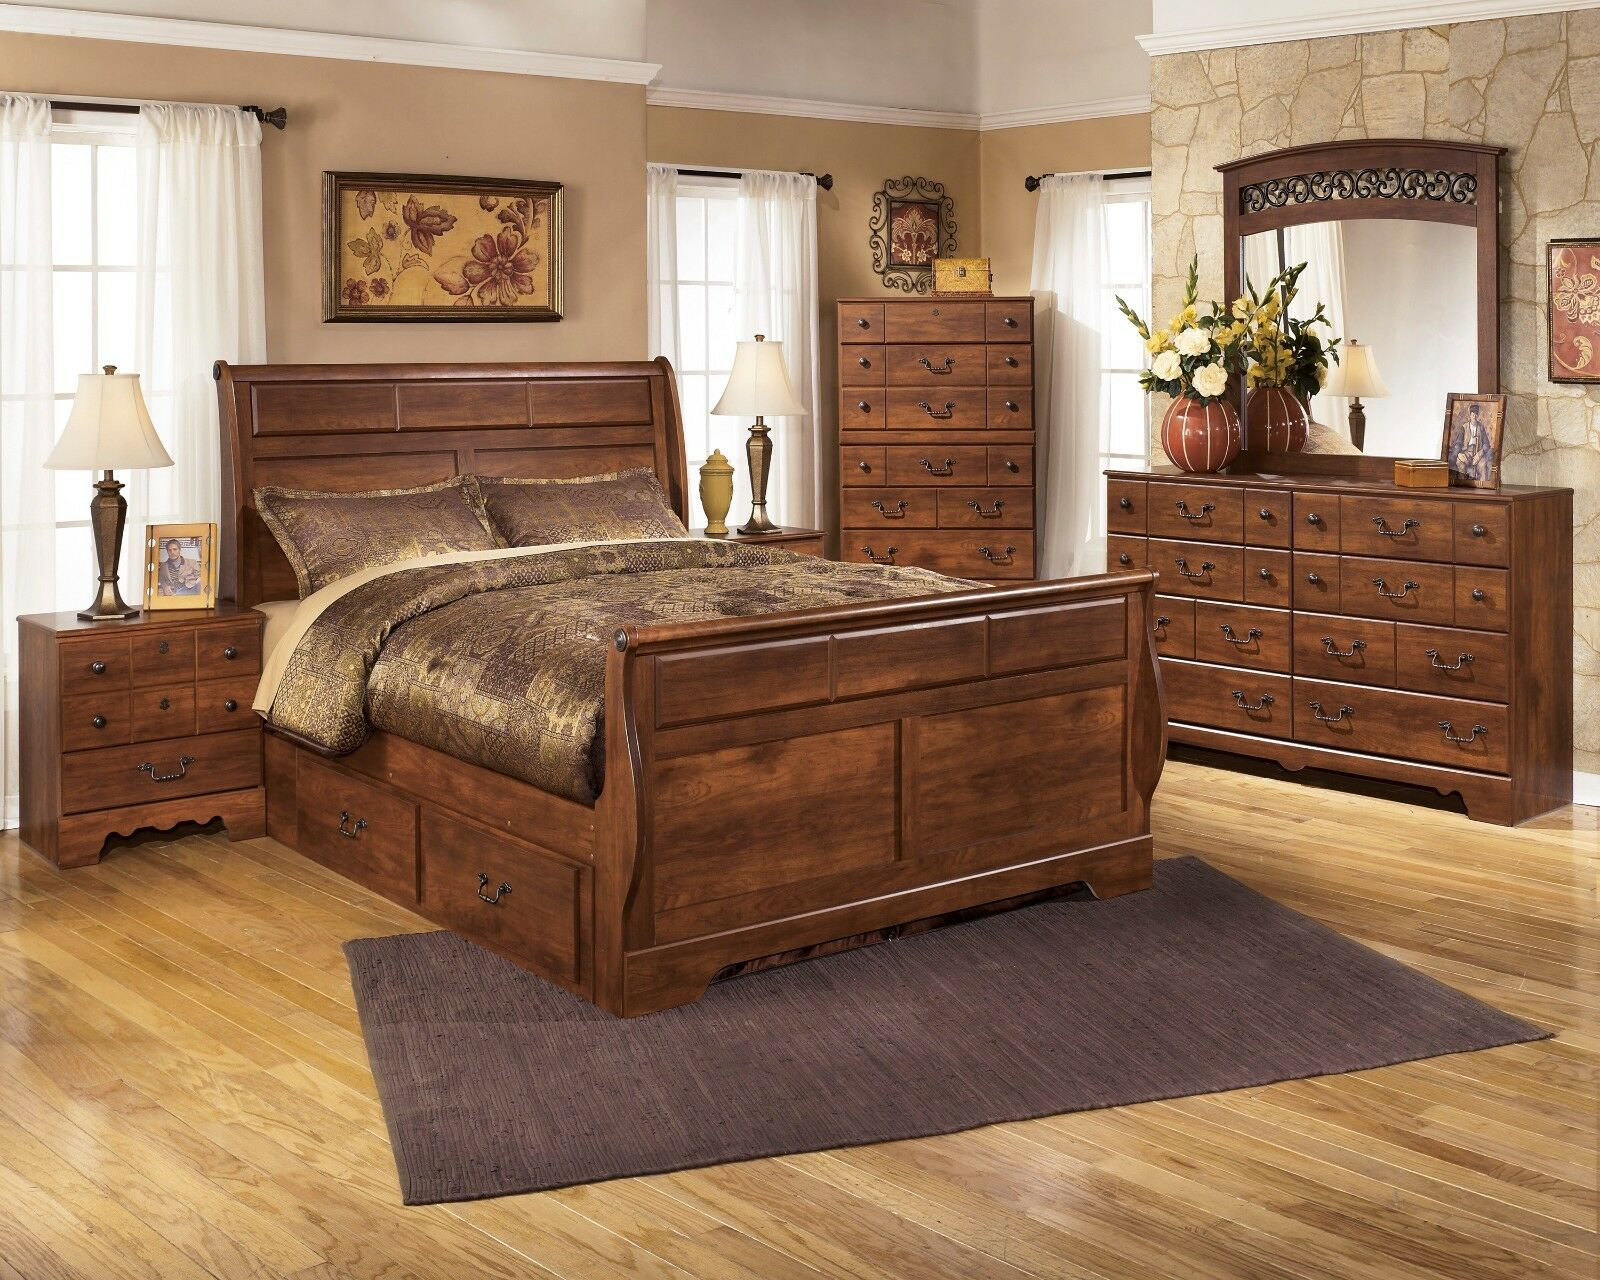 Bedroom set sleigh - Picture 1 Of 6